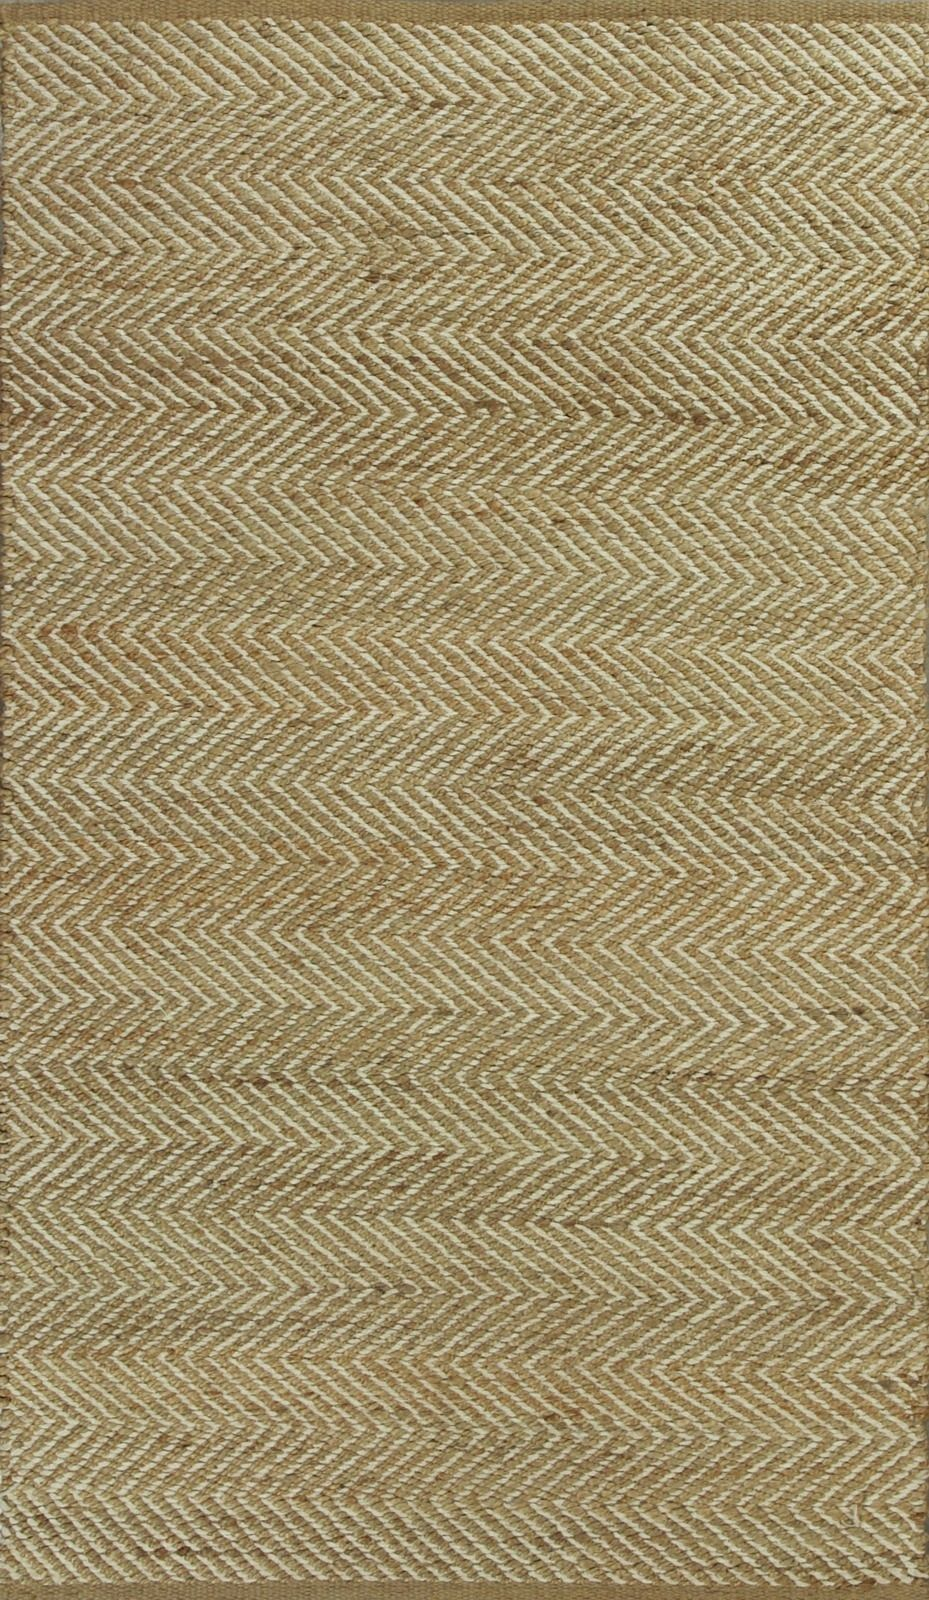 kas izteca contemporary area rug collection